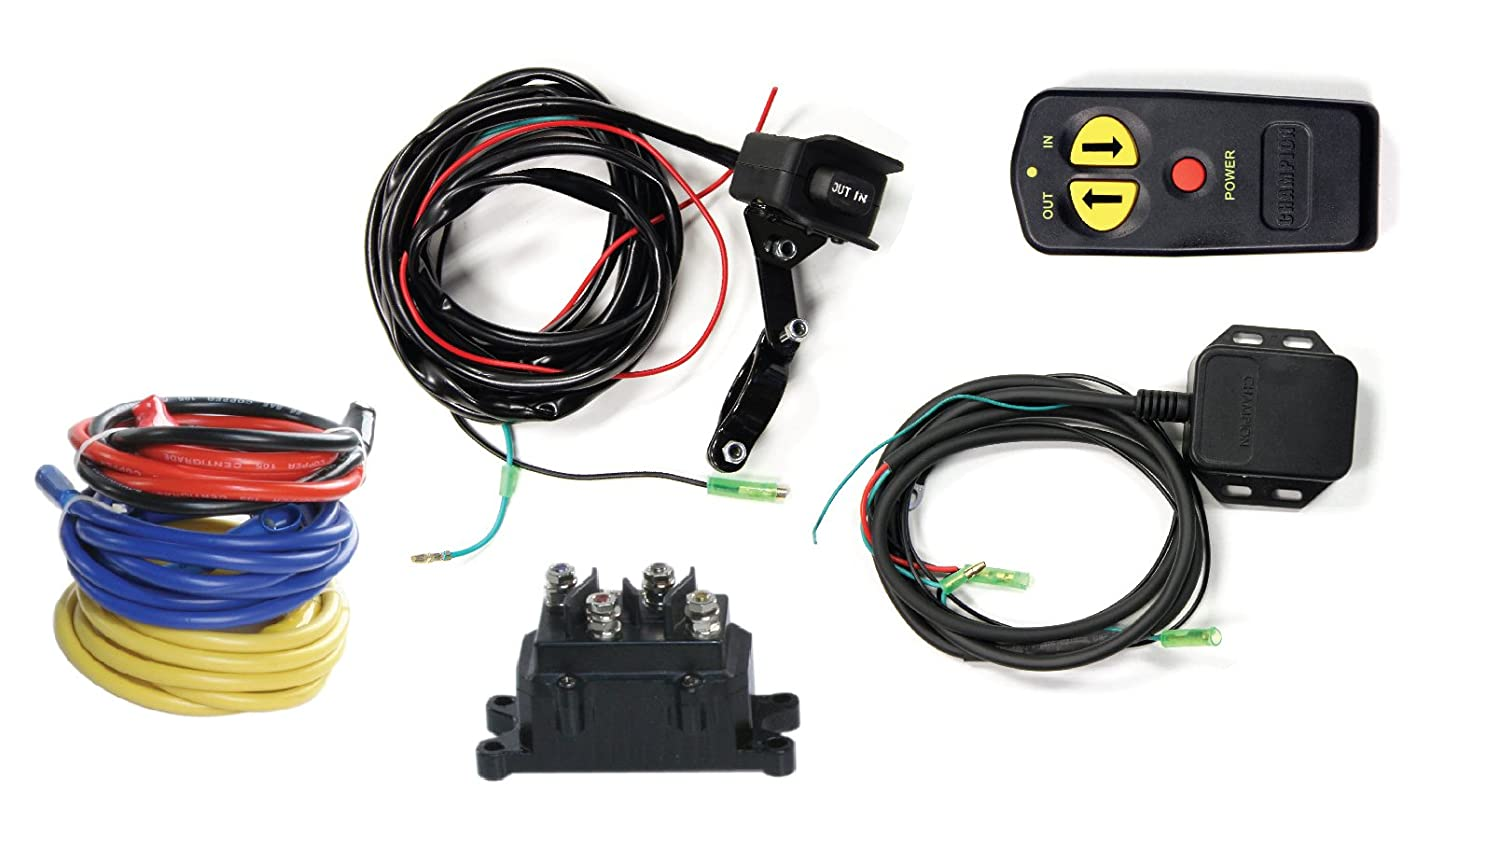 Champion Wireless Winch Remote Control Kit For 5000 Lb Atv Wiring Diagram Relay 40 Or Less Utv Winches Automotive